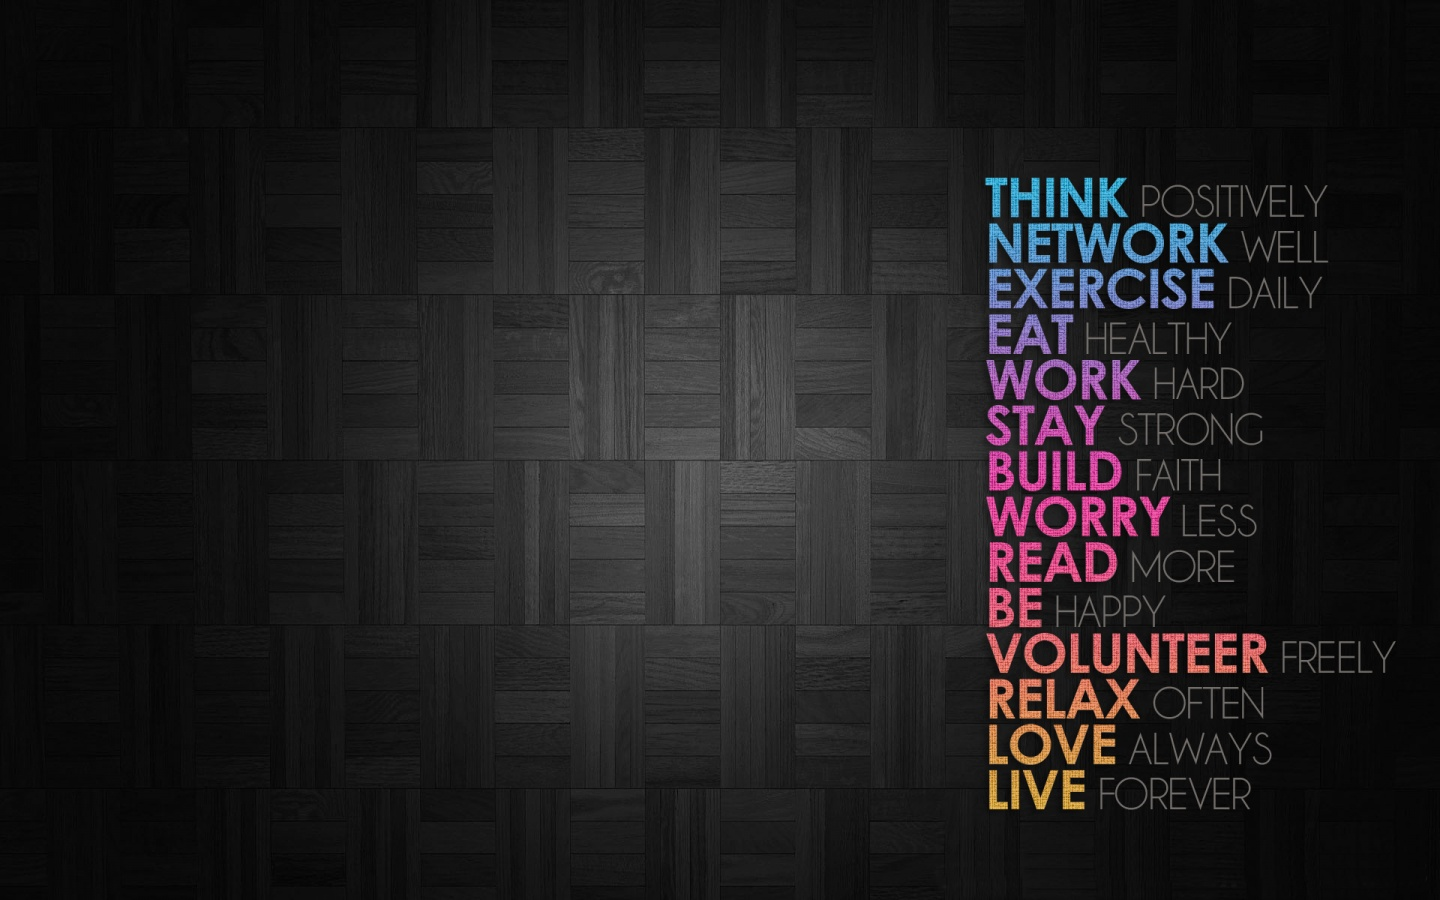 Positive Attitude Wallpapers   WallpaperSafari